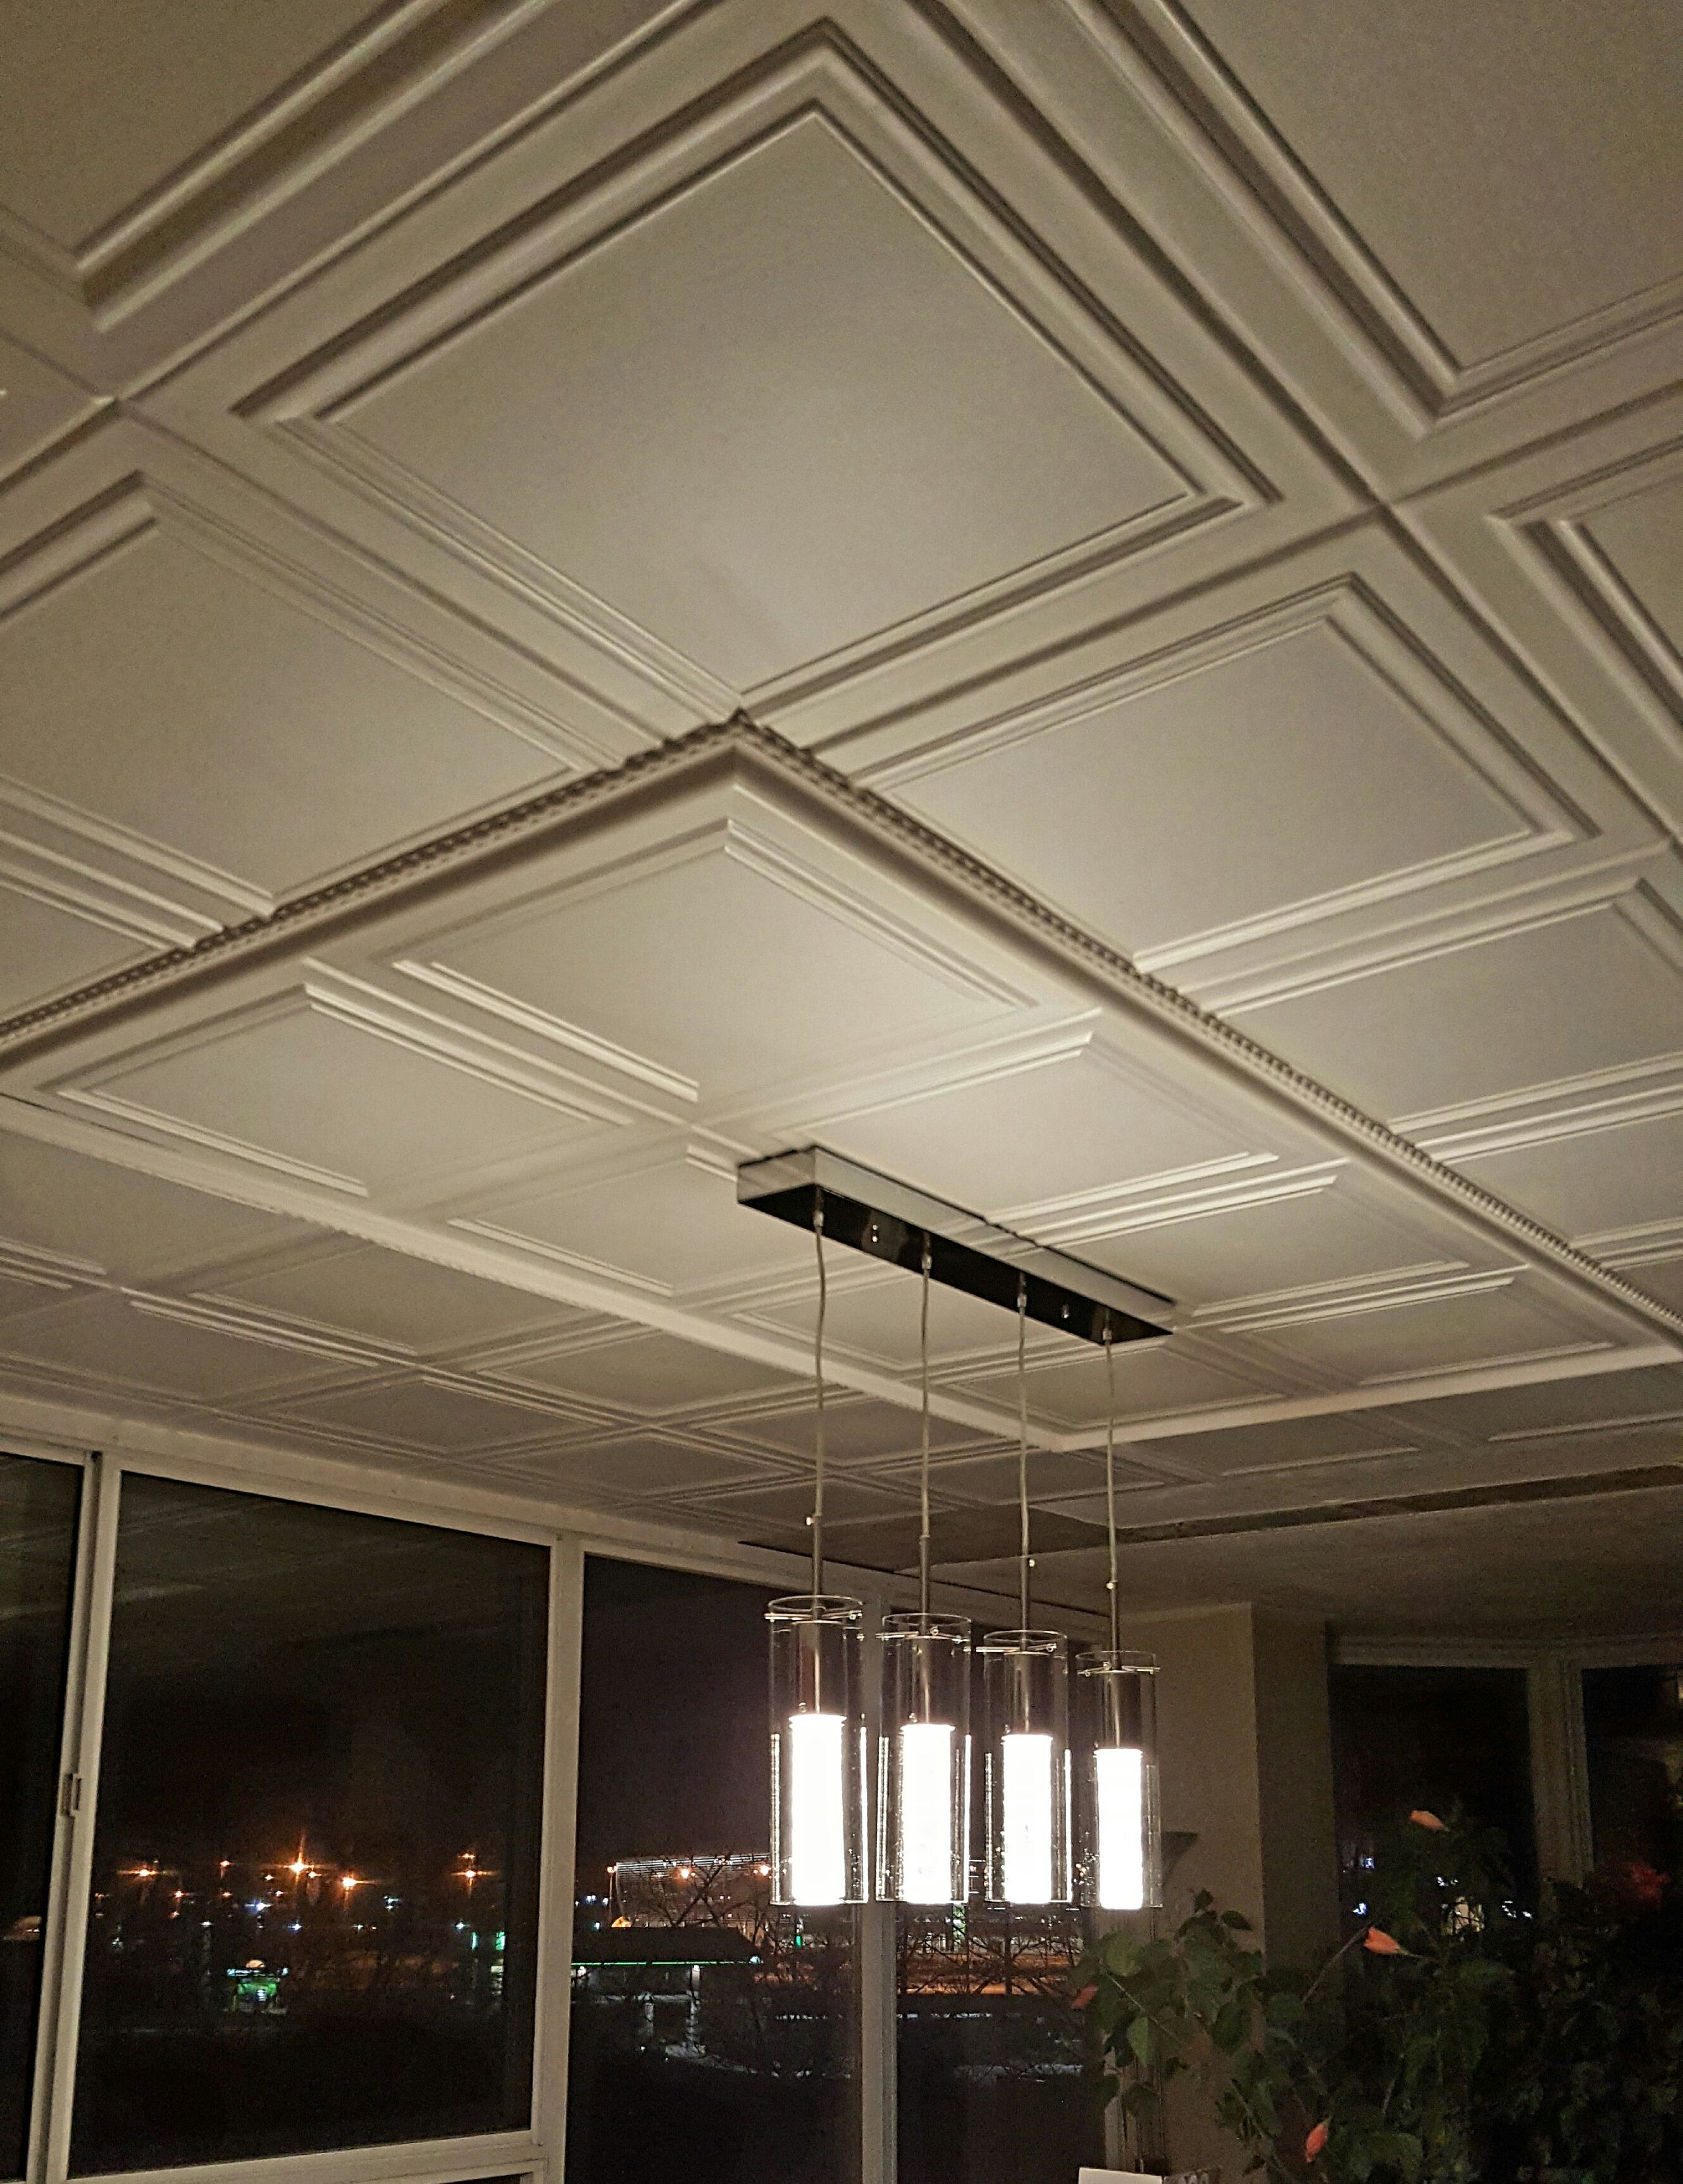 A Simple Design That Will Suit Any Room These Styrofoam Ceiling Tiles Can Be Used In Residentia Covering Popcorn Ceiling Styrofoam Ceiling Tiles Ceiling Tiles